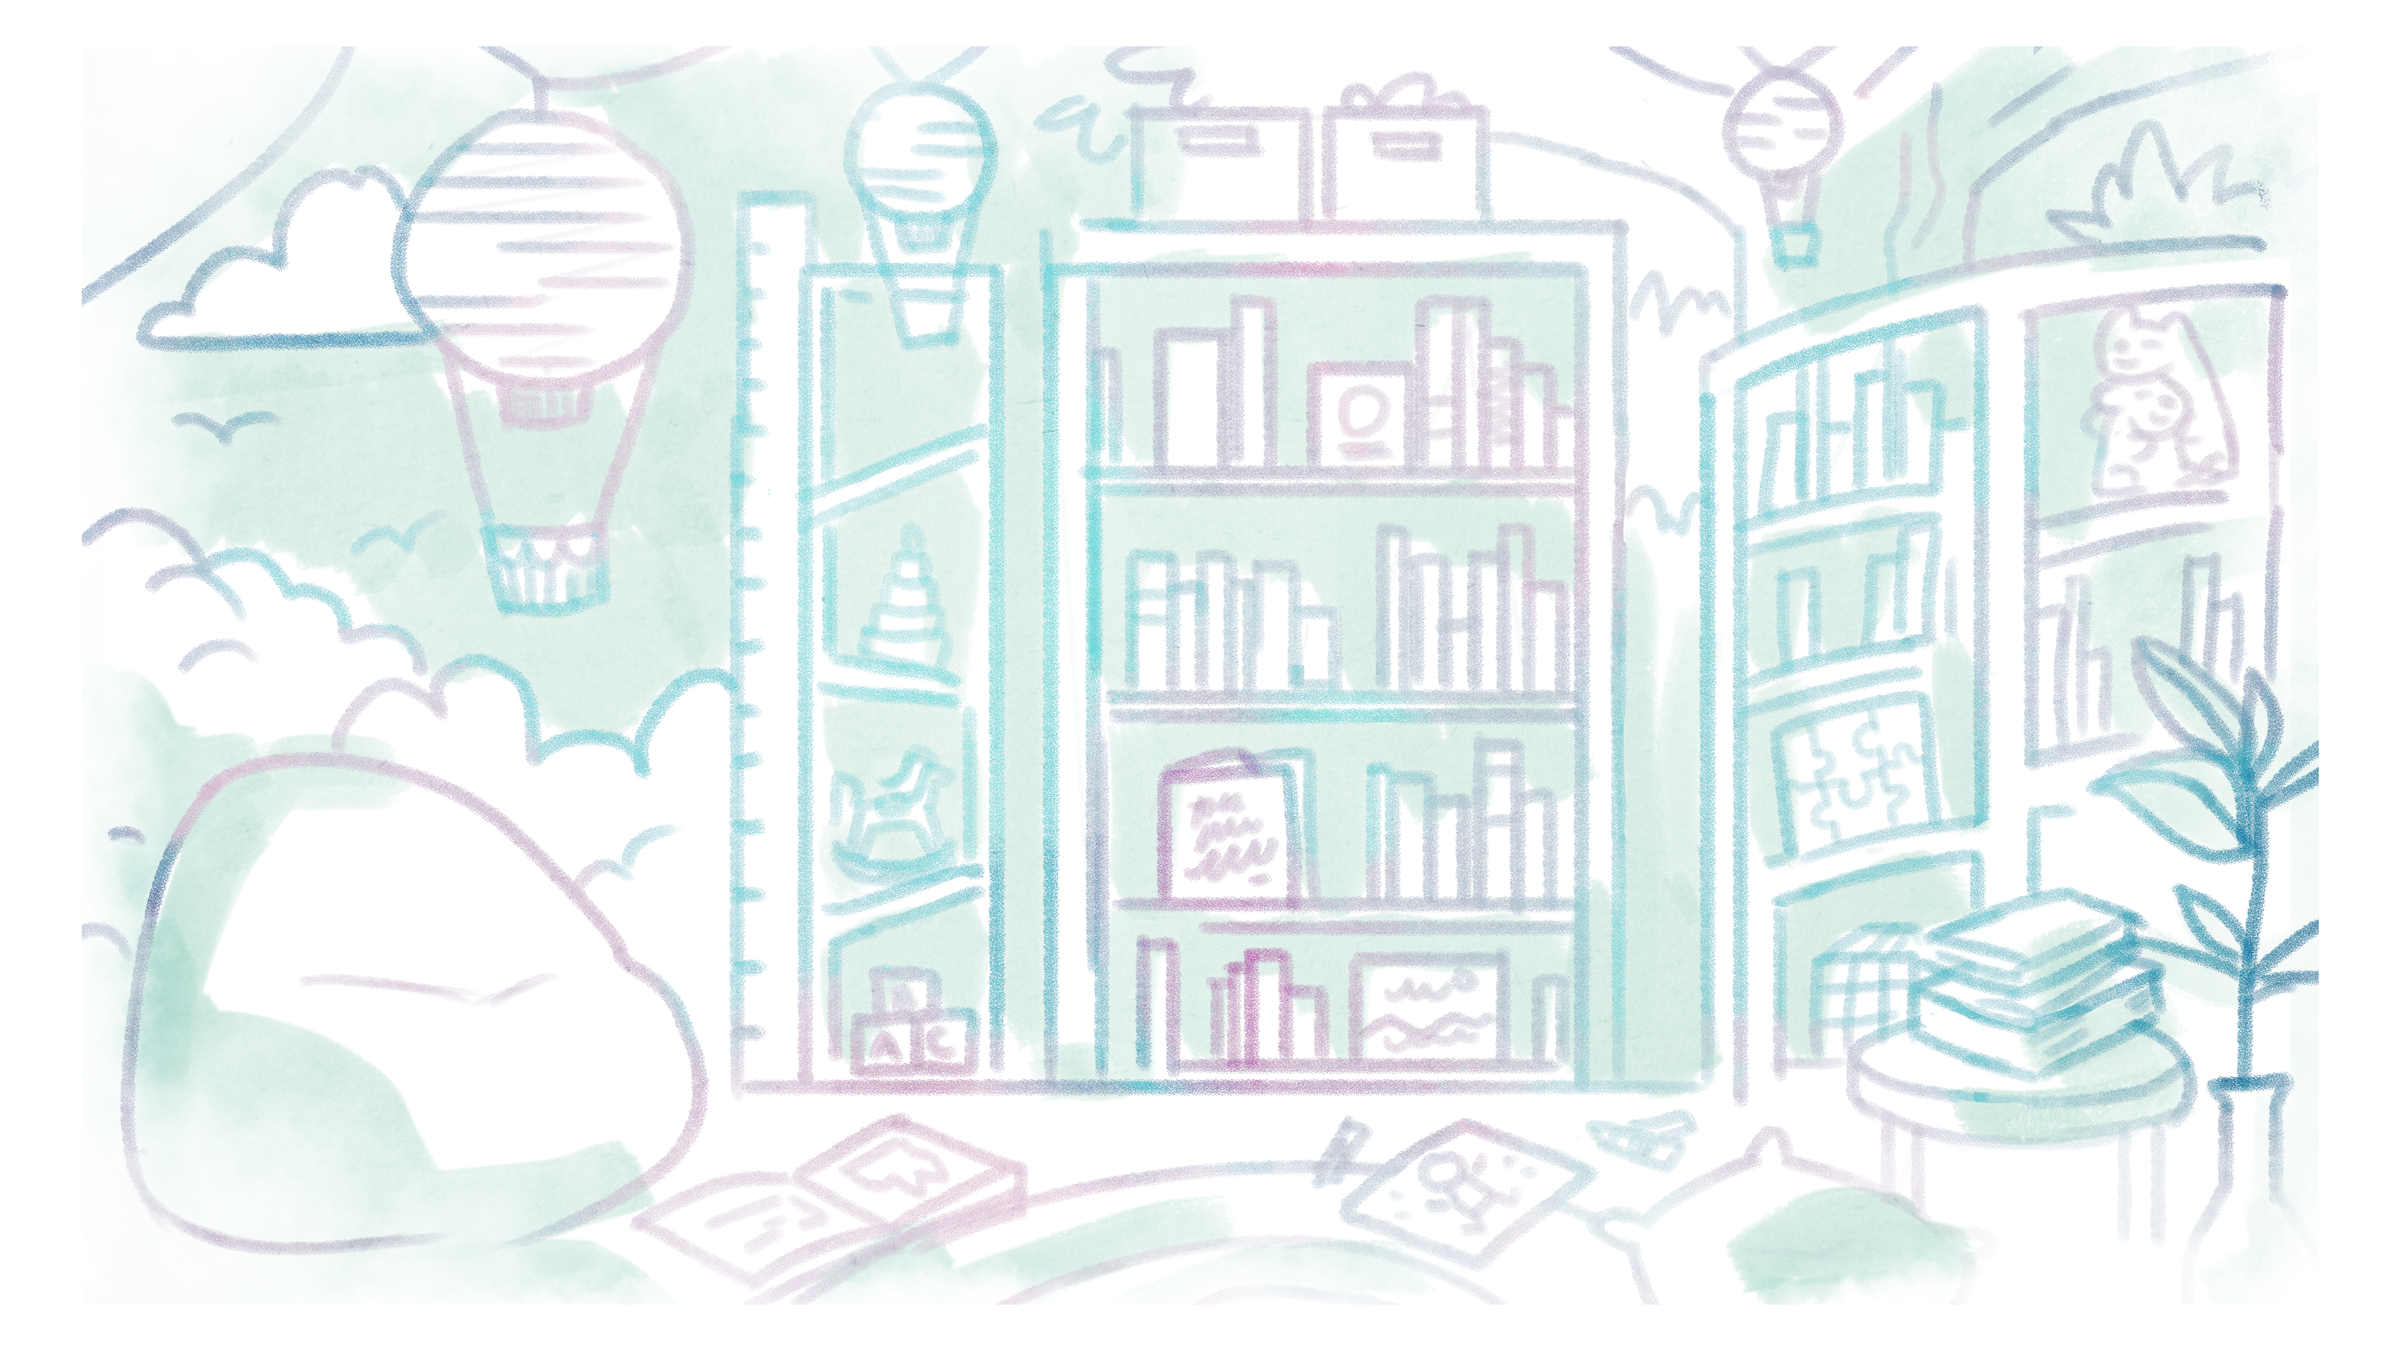 snugglewuggle_illustrations_thestore_smal_paperl.png